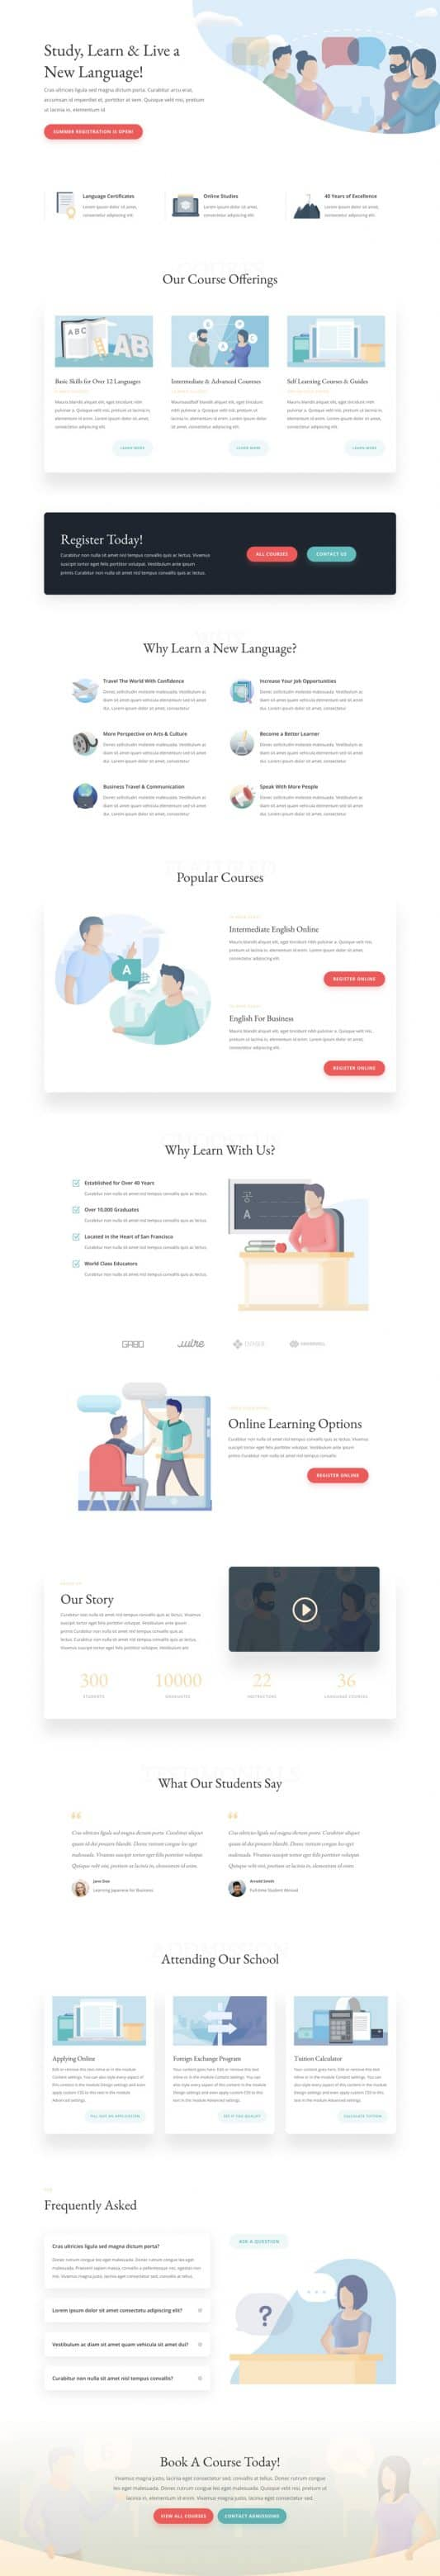 Language School Web Design 7